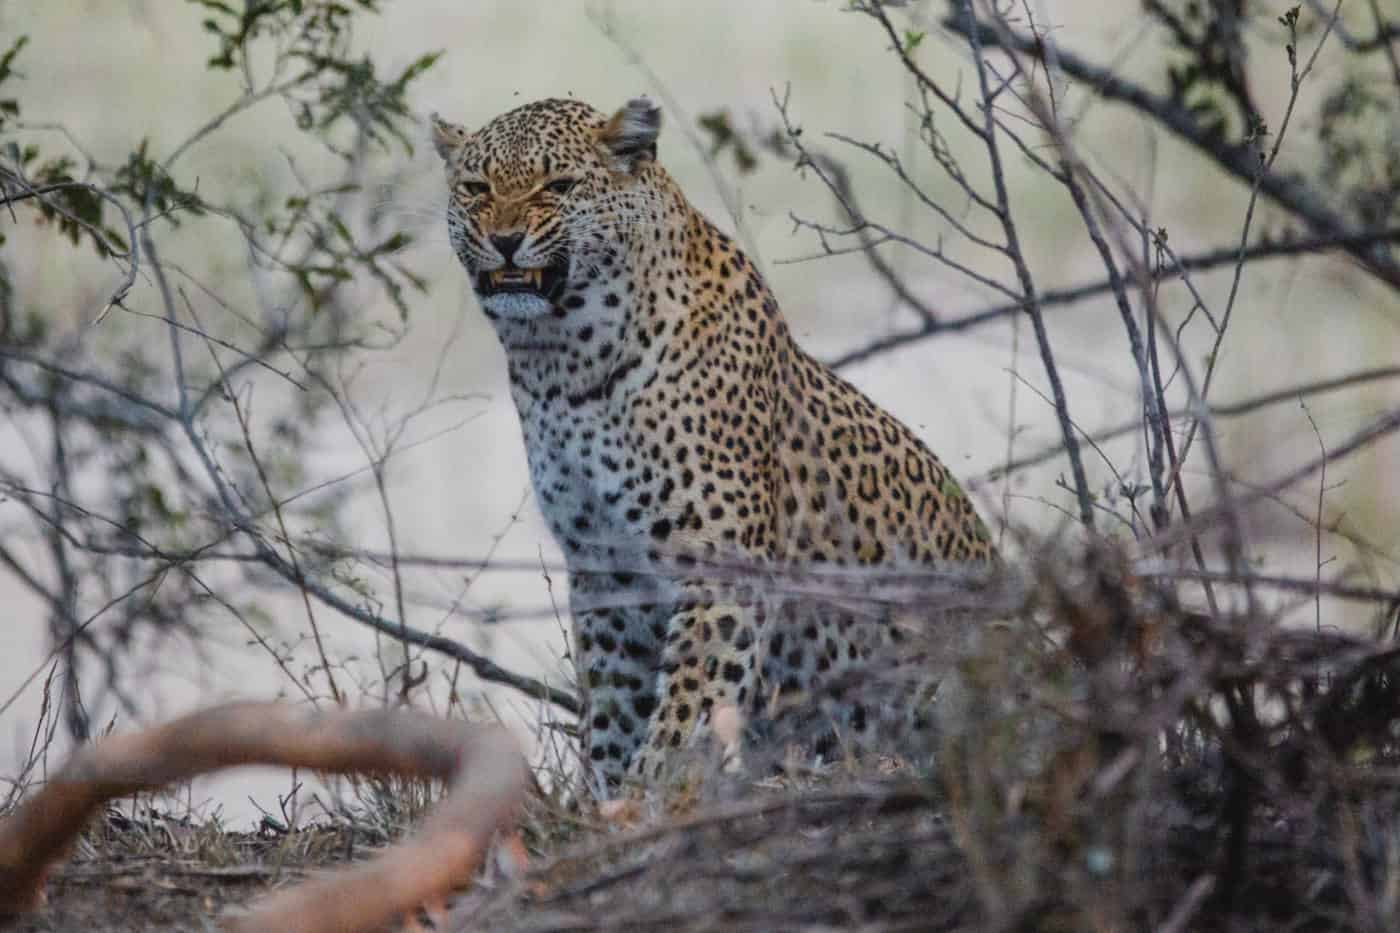 leopard kruger national park south africa